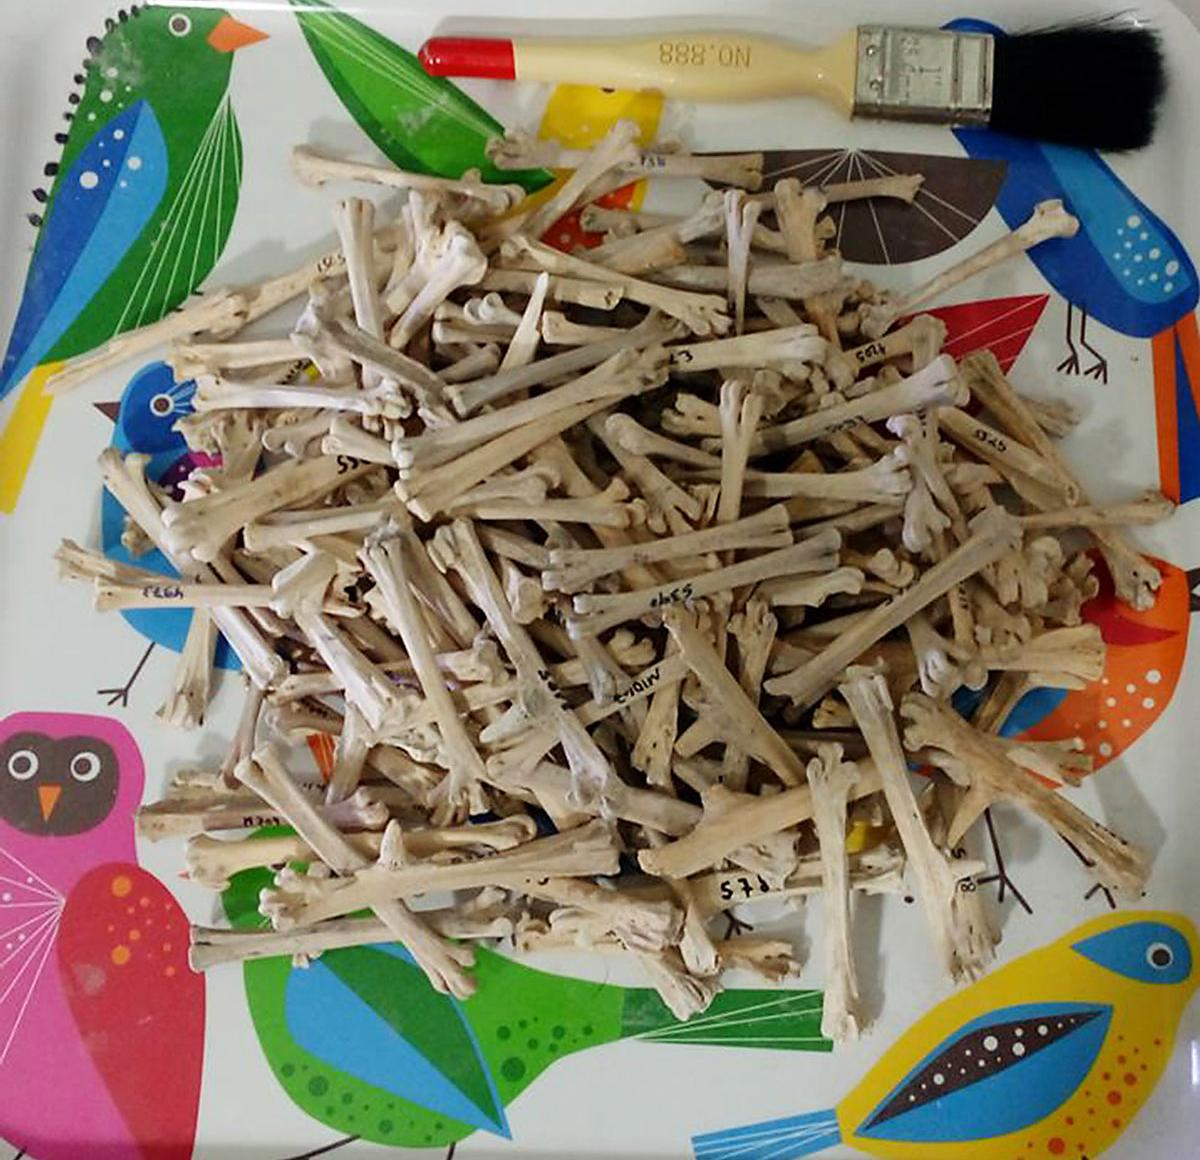 Tarsometatarsus chicken bones are ready to be analyzed at the zooarchaeology lab, Zinman Institute of Archaeology, University of Haifa.